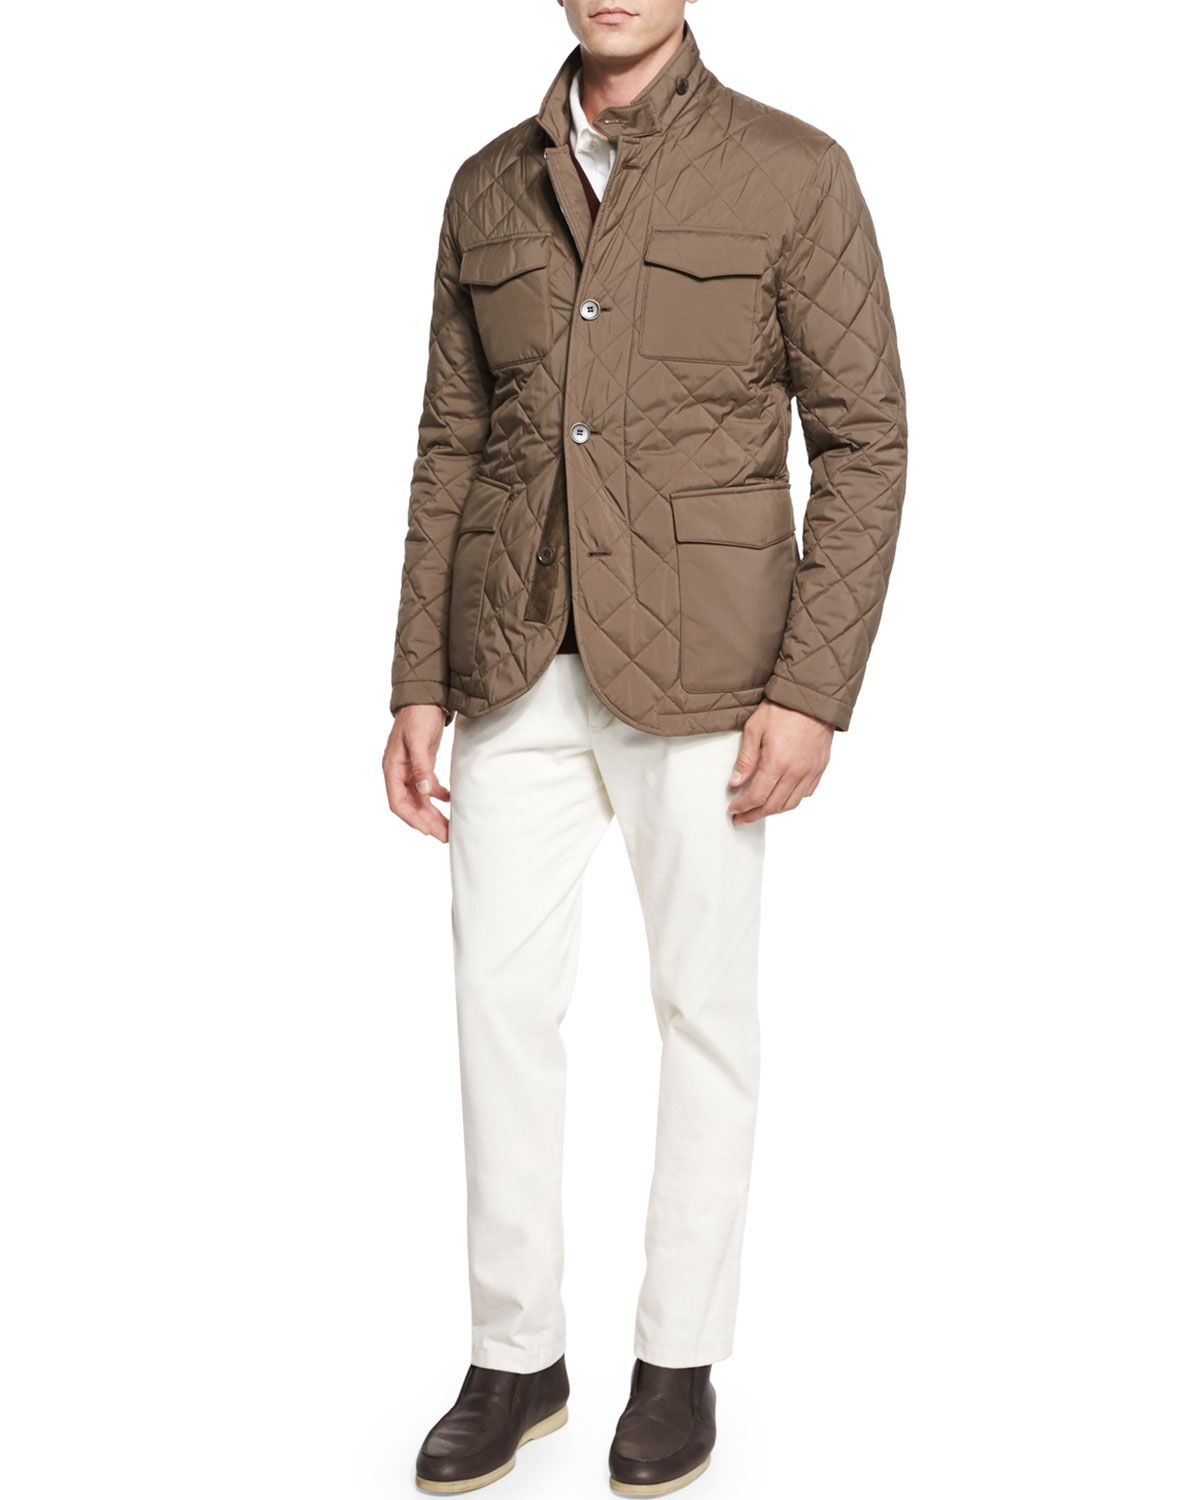 Wool cashmere flannel jacket  Loro Piana Journey DiamondQuilted Storm Jacket Baby Cashmere V